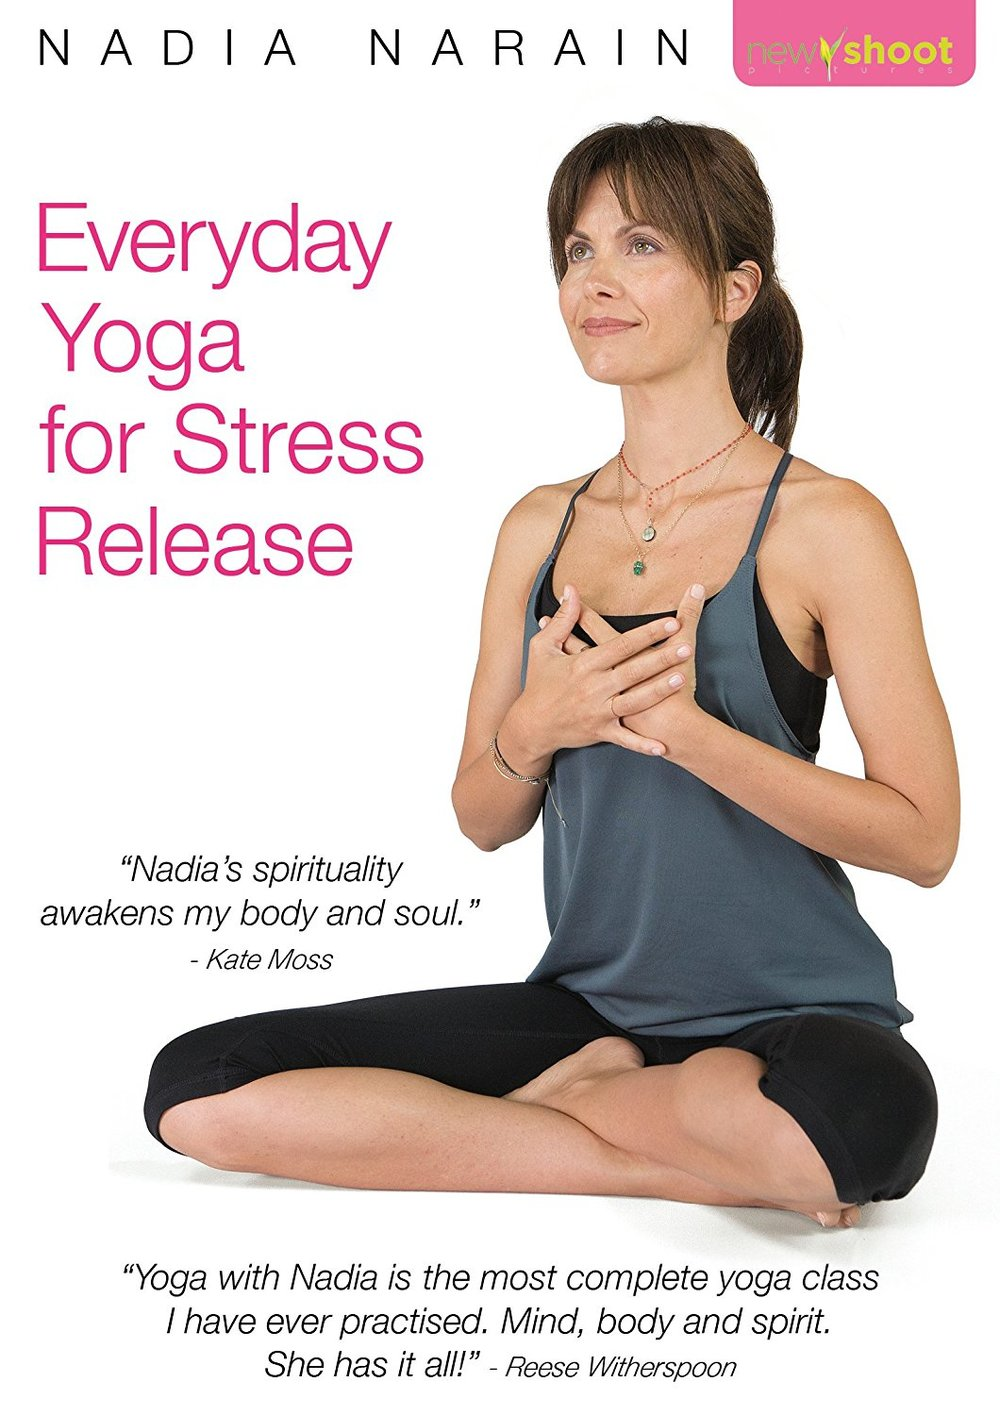 Everyday Yoga for stress release by Nadia Narain